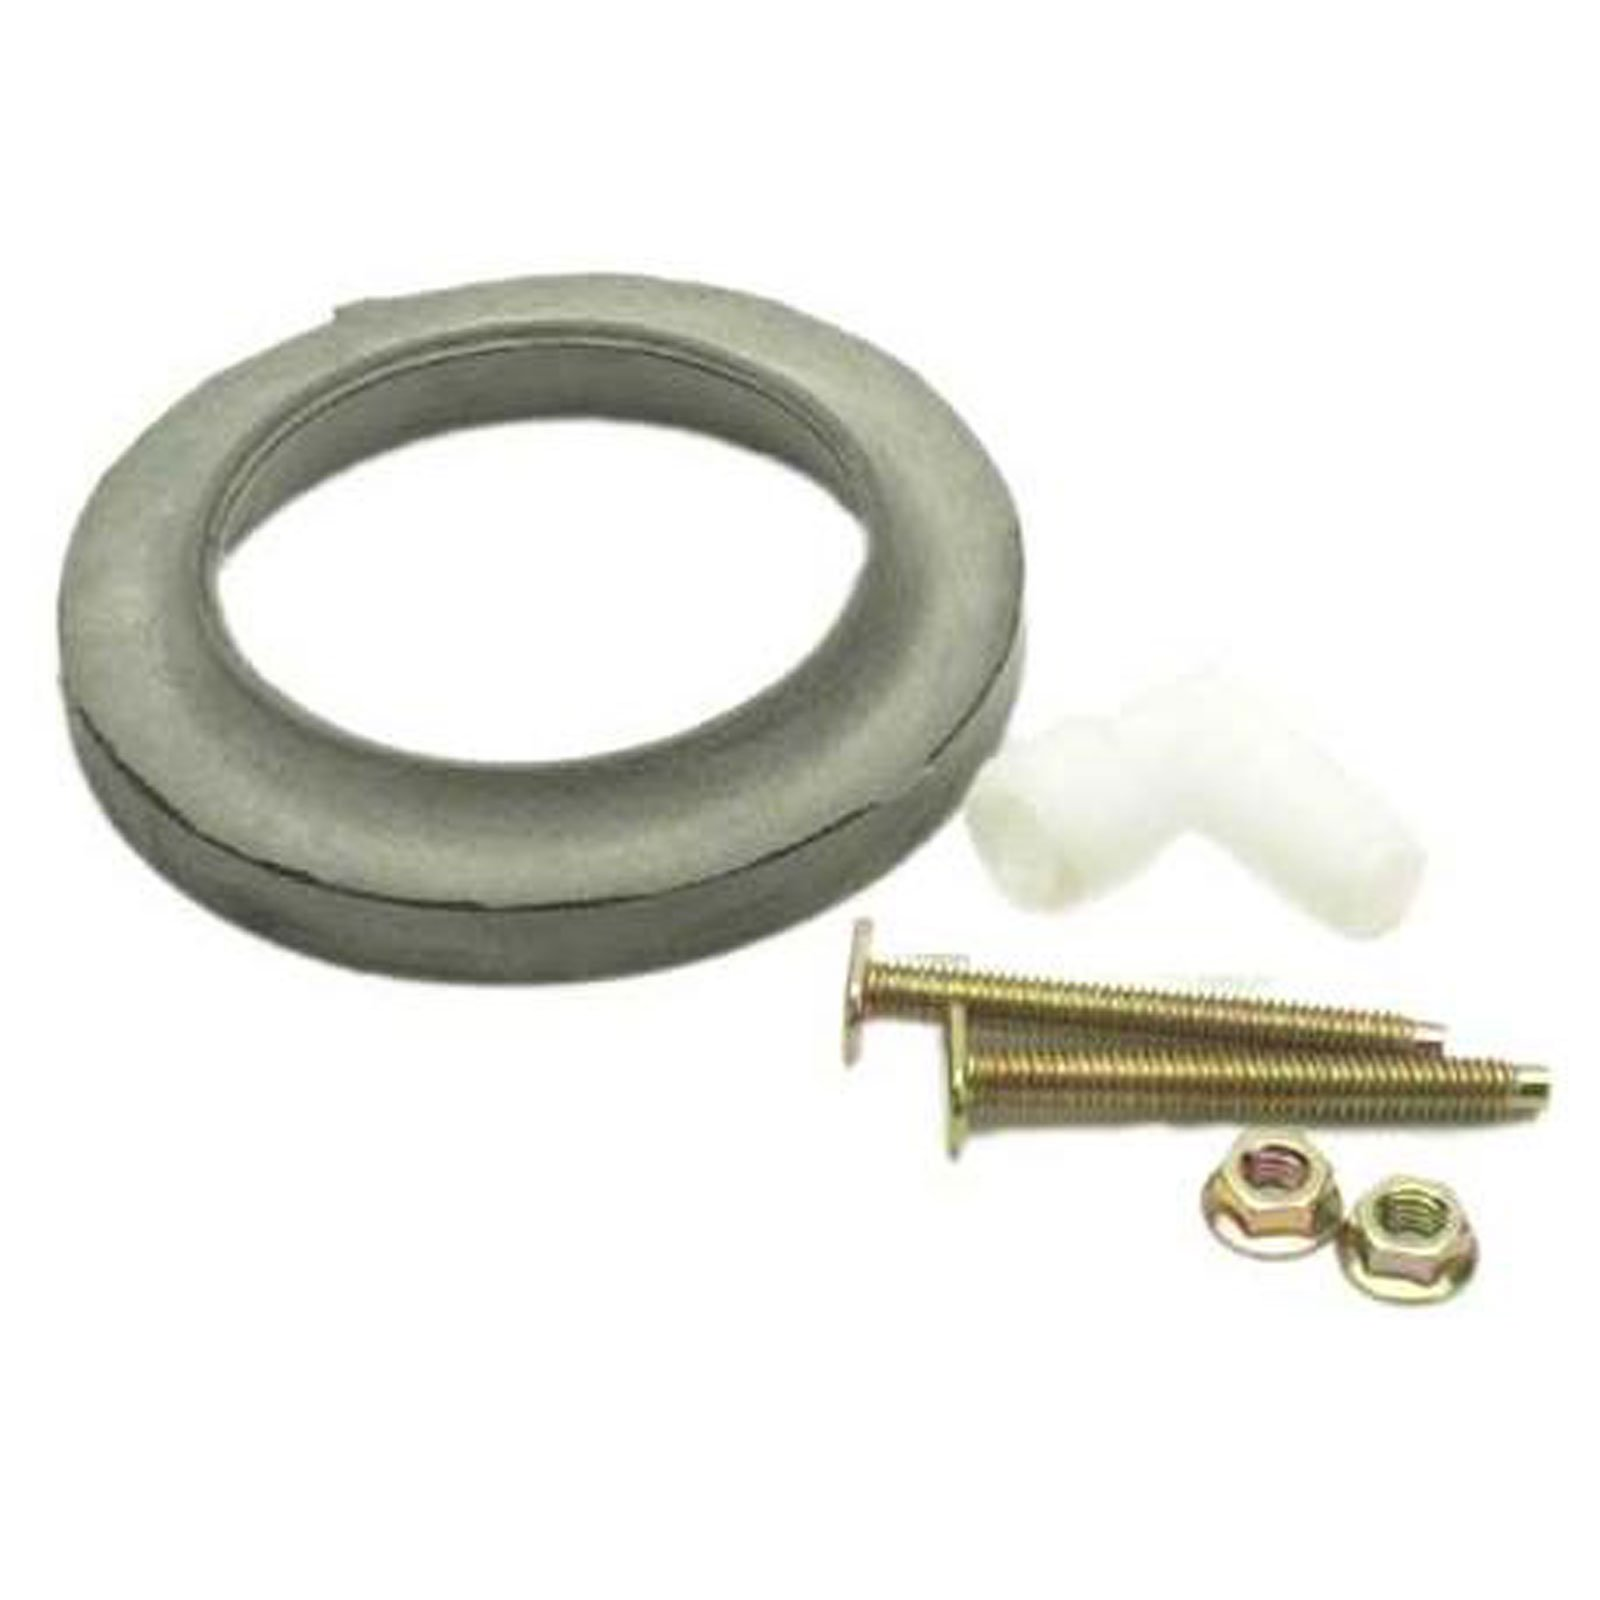 Thetford 42115 Style II China Bowl Toilet Closet Bolt Package by Thetford